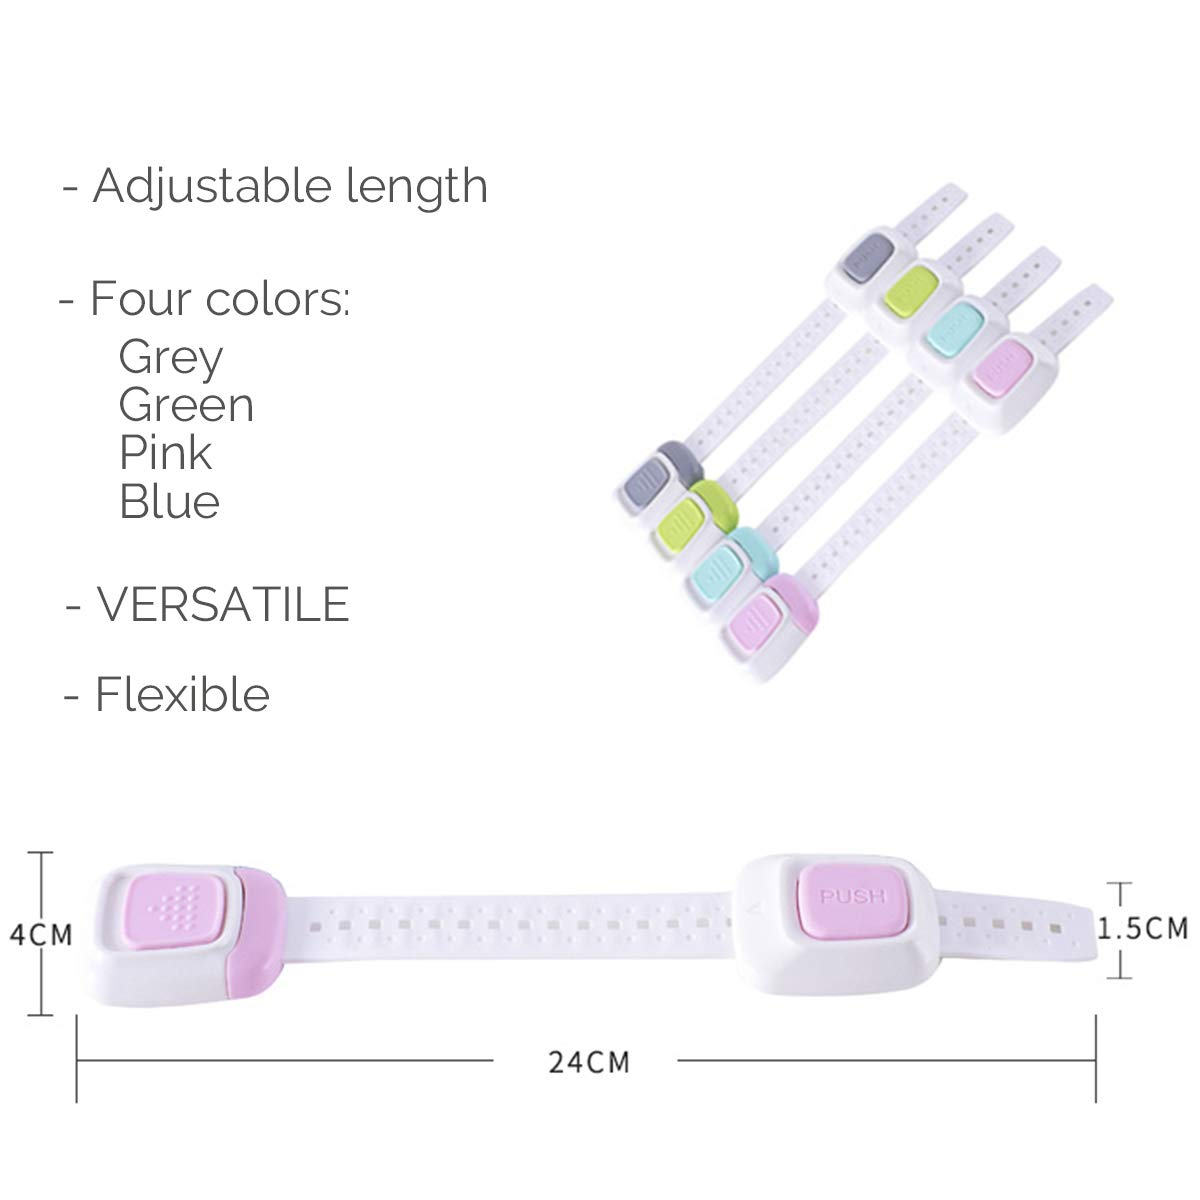 Adjustable Length /& Flexible Blue Pack of 4 Neotech Care Baby Safety Locks